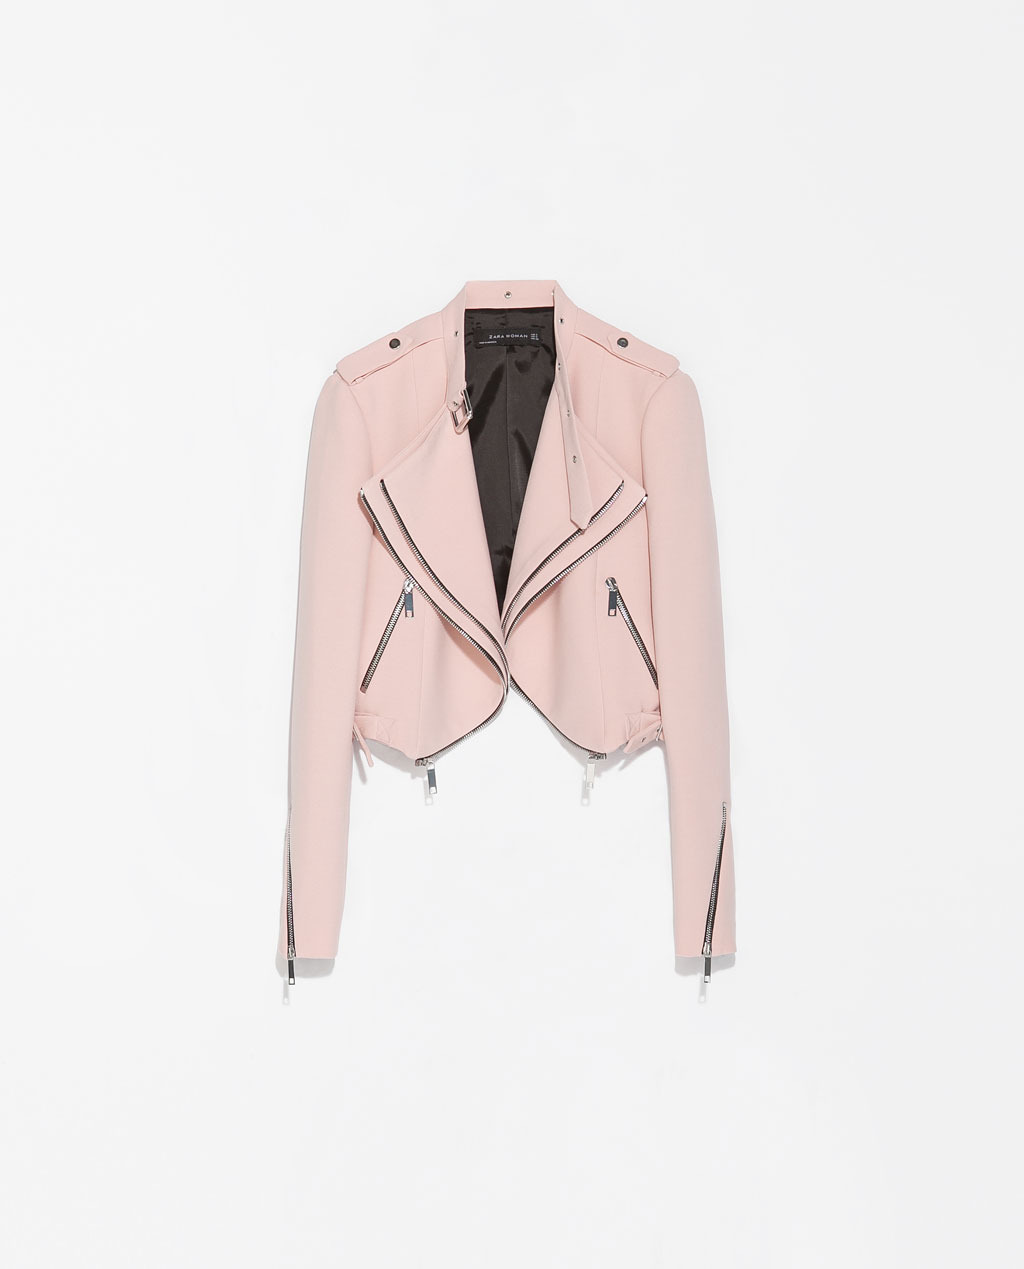 Cropped Jacket With Zips - pattern: plain; style: cropped; collar: asymmetric biker; fit: slim fit; predominant colour: blush; occasions: casual, evening, creative work; fibres: polyester/polyamide - stretch; sleeve length: long sleeve; sleeve style: standard; collar break: high/illusion of break when open; pattern type: fabric; texture group: woven light midweight; trends: sorbet shades; season: s/s 2014; length: cropped